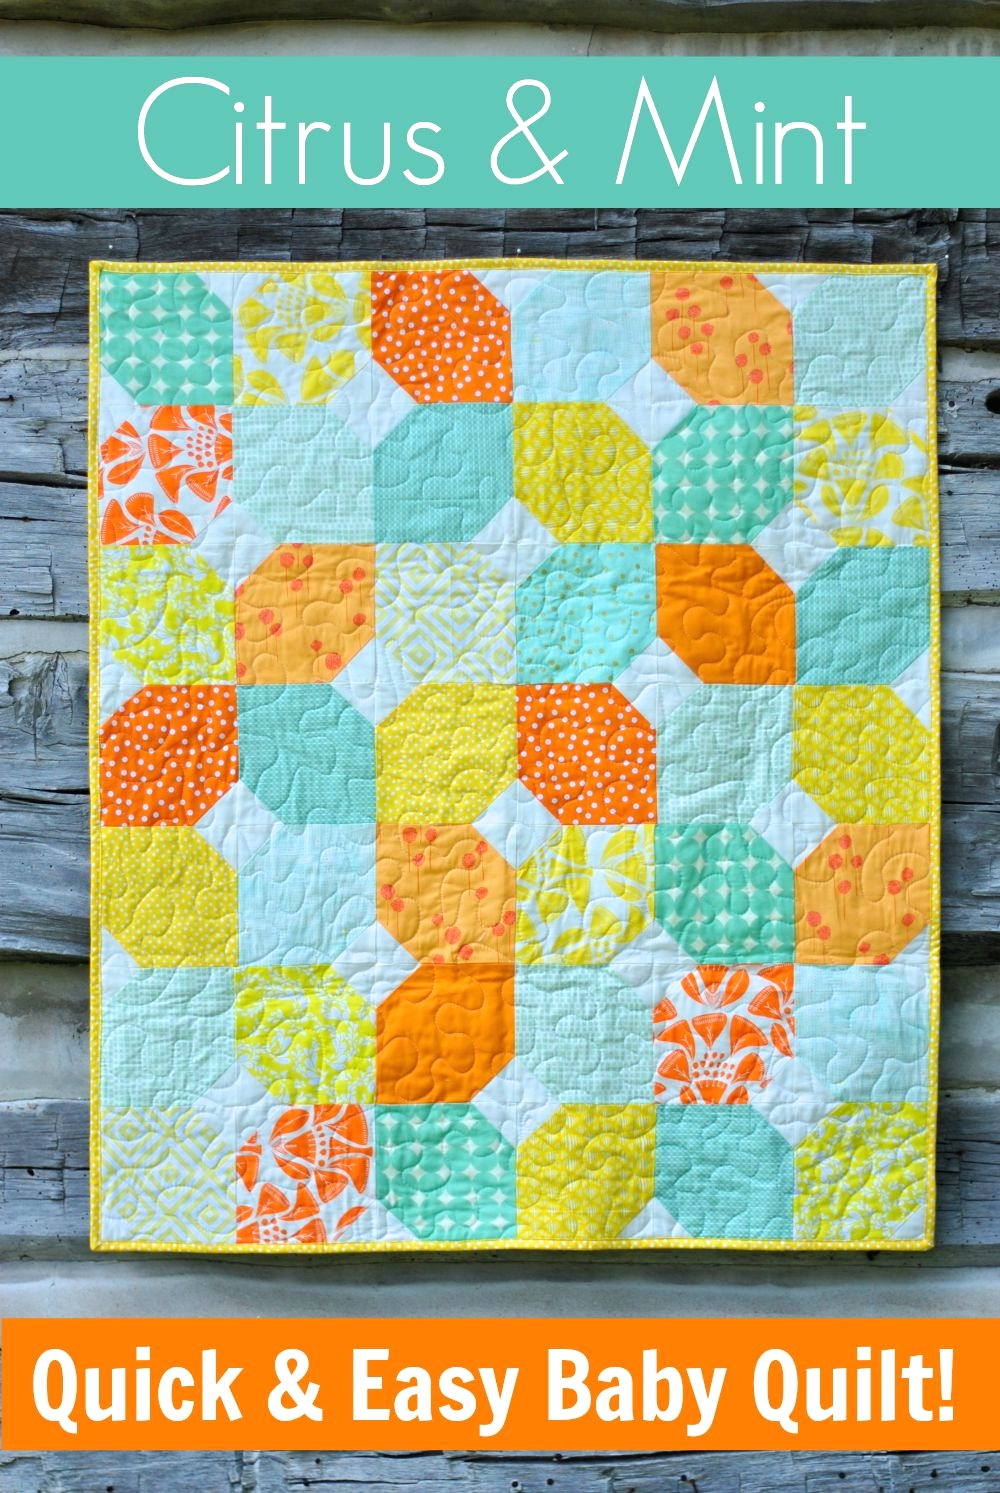 Citrus & Mint: Quick & Easy Baby Quilt + Free Pattern | Craft Buds